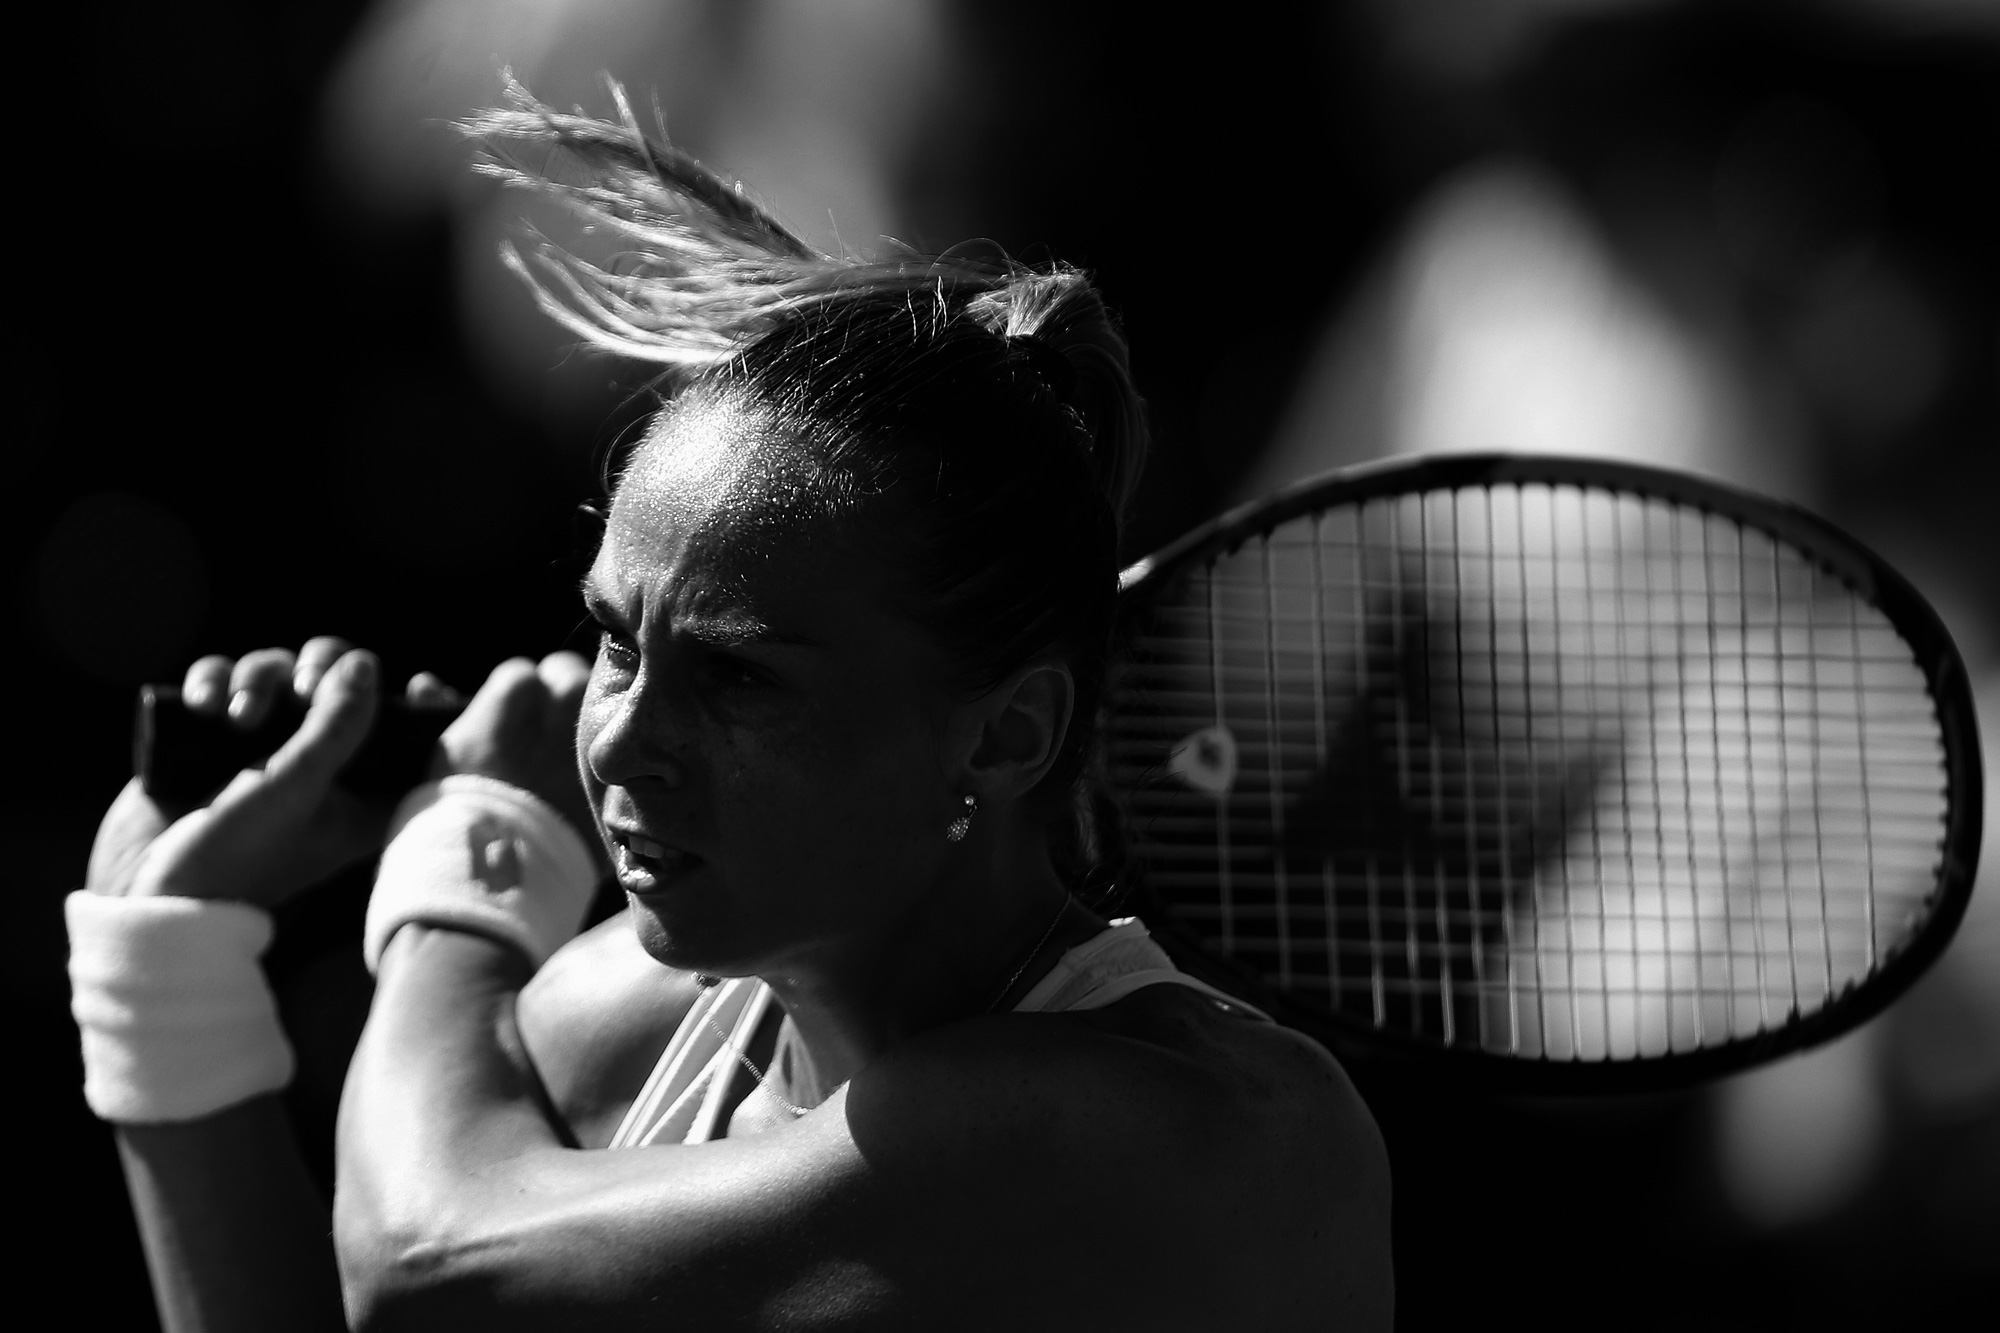 Magdalena Rybarikova plays Laura Robson in Womens Singles First Round in Stadium 4 at the Indian Wells Tennis Garden in Indian Wells, California Thursday, March 10, 2016.